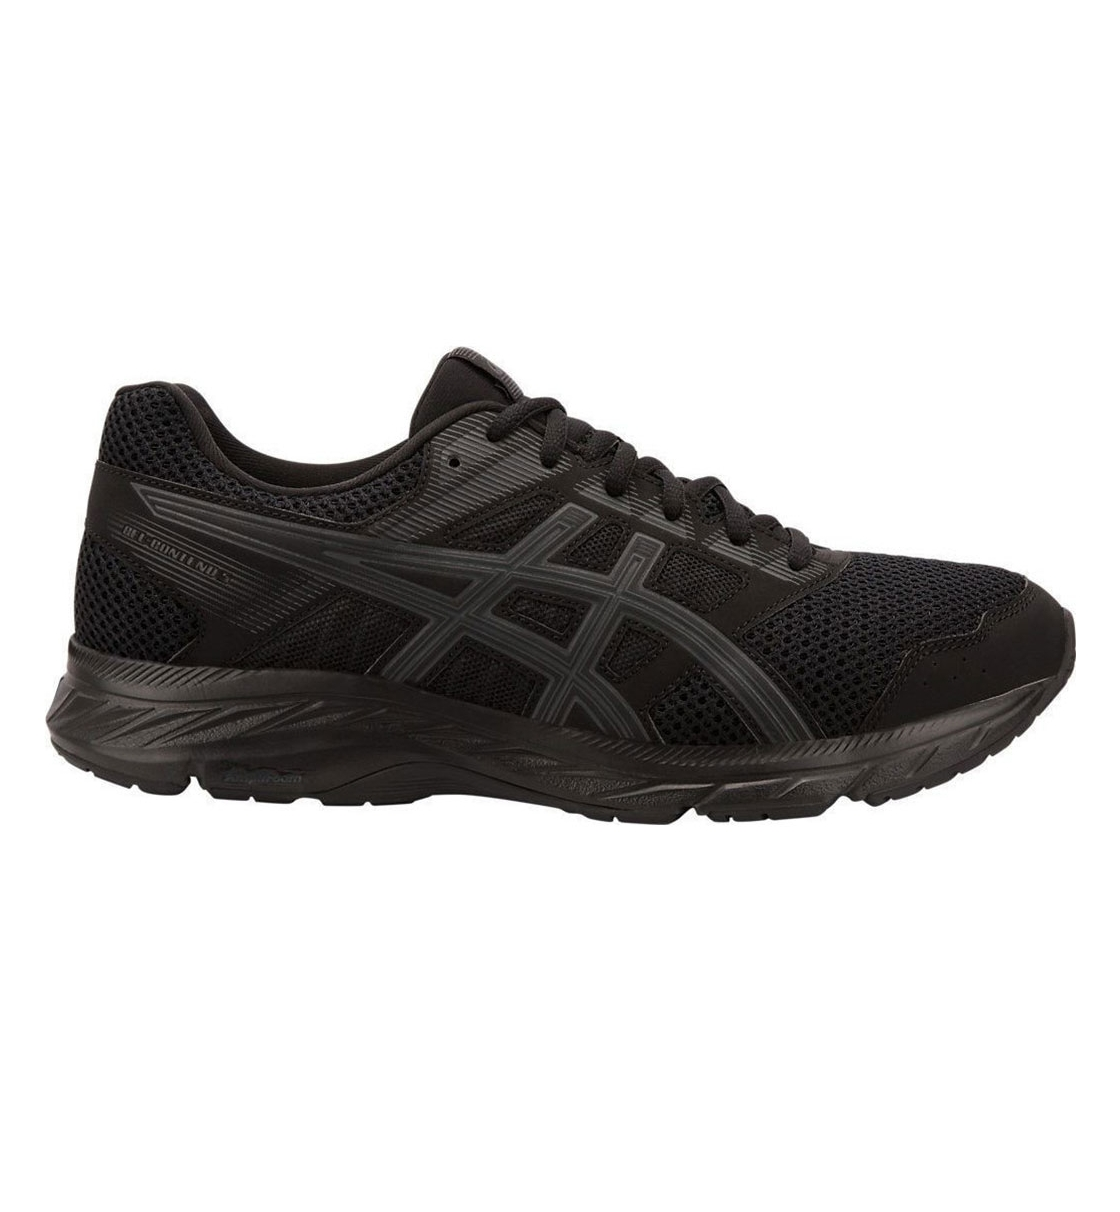 Asics Ανδρικό Παπούτσι Running Ss19 Gel-Contend 5 1011A256 ... a253c21e8b5af